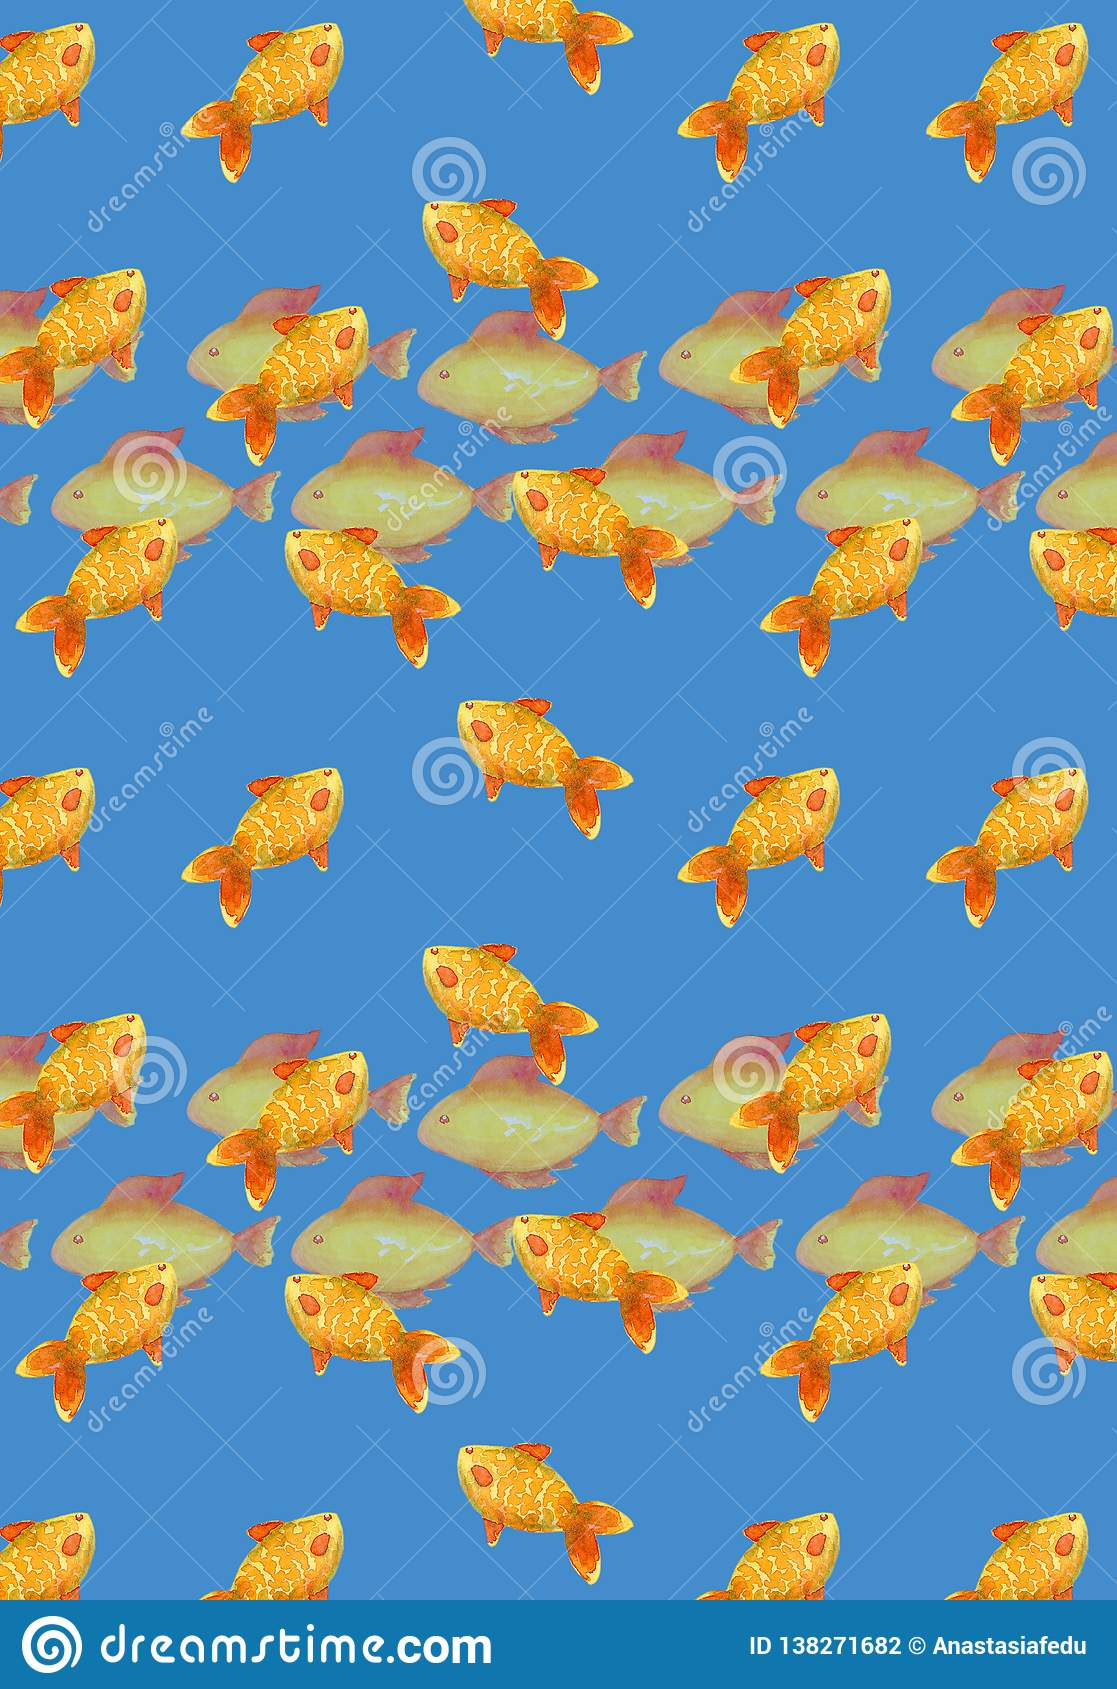 Vertical Wallpaper With Tropical Fish In A Watercolor Style